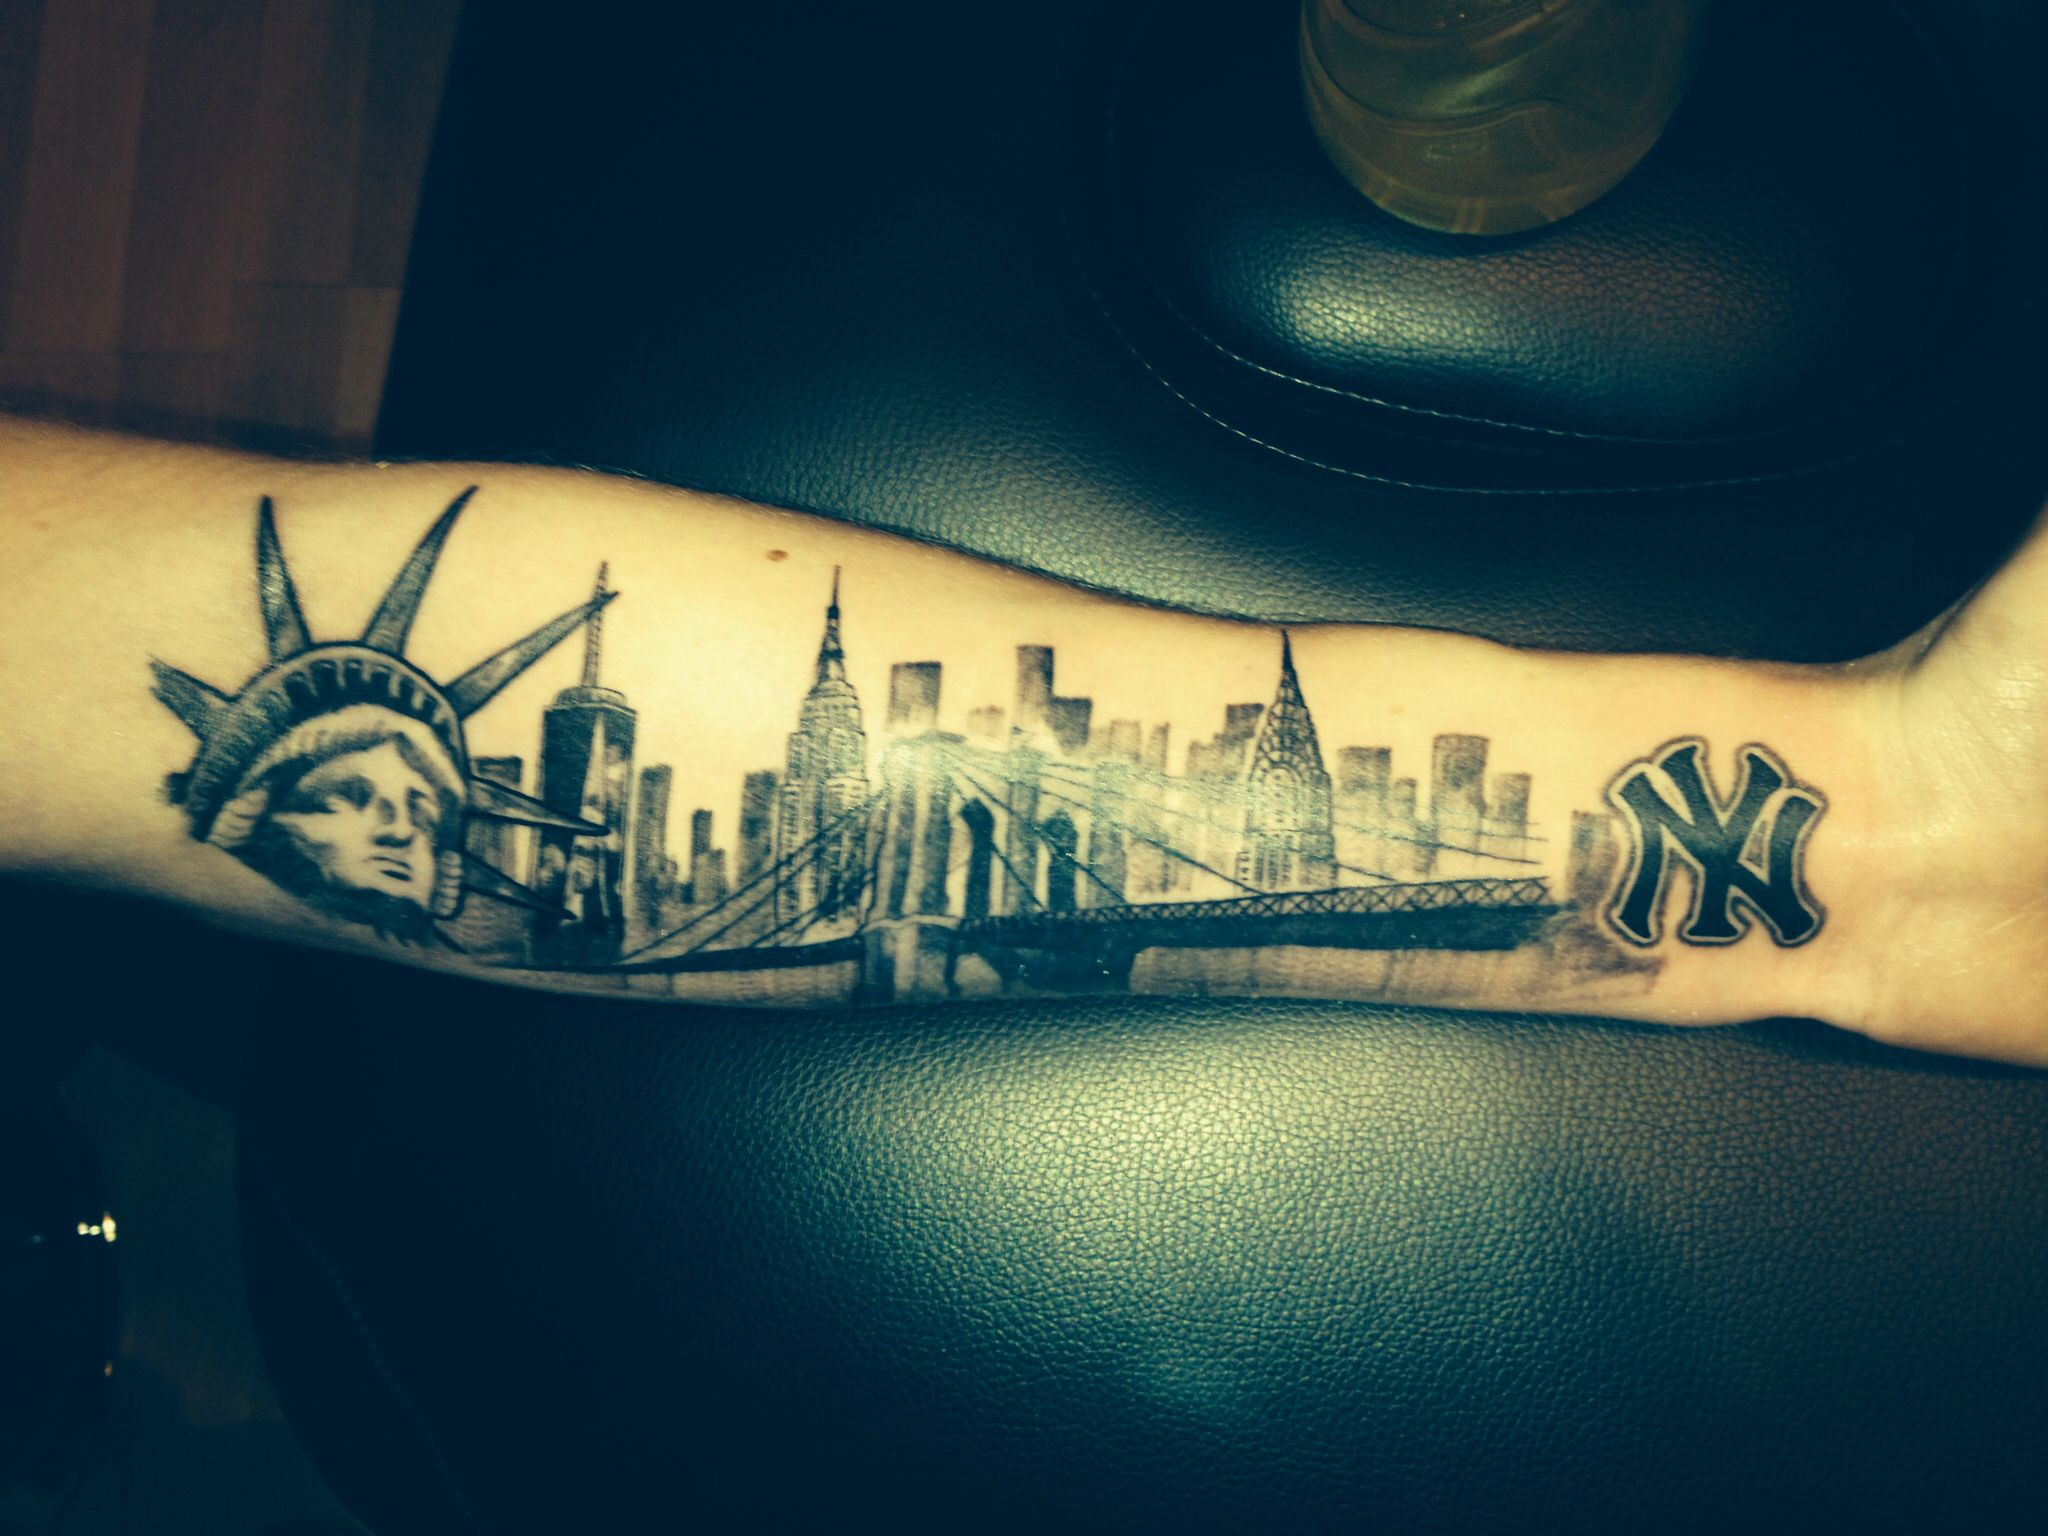 nyc skyline tattoo on my arm statue of liberty one world trade center empire state building. Black Bedroom Furniture Sets. Home Design Ideas